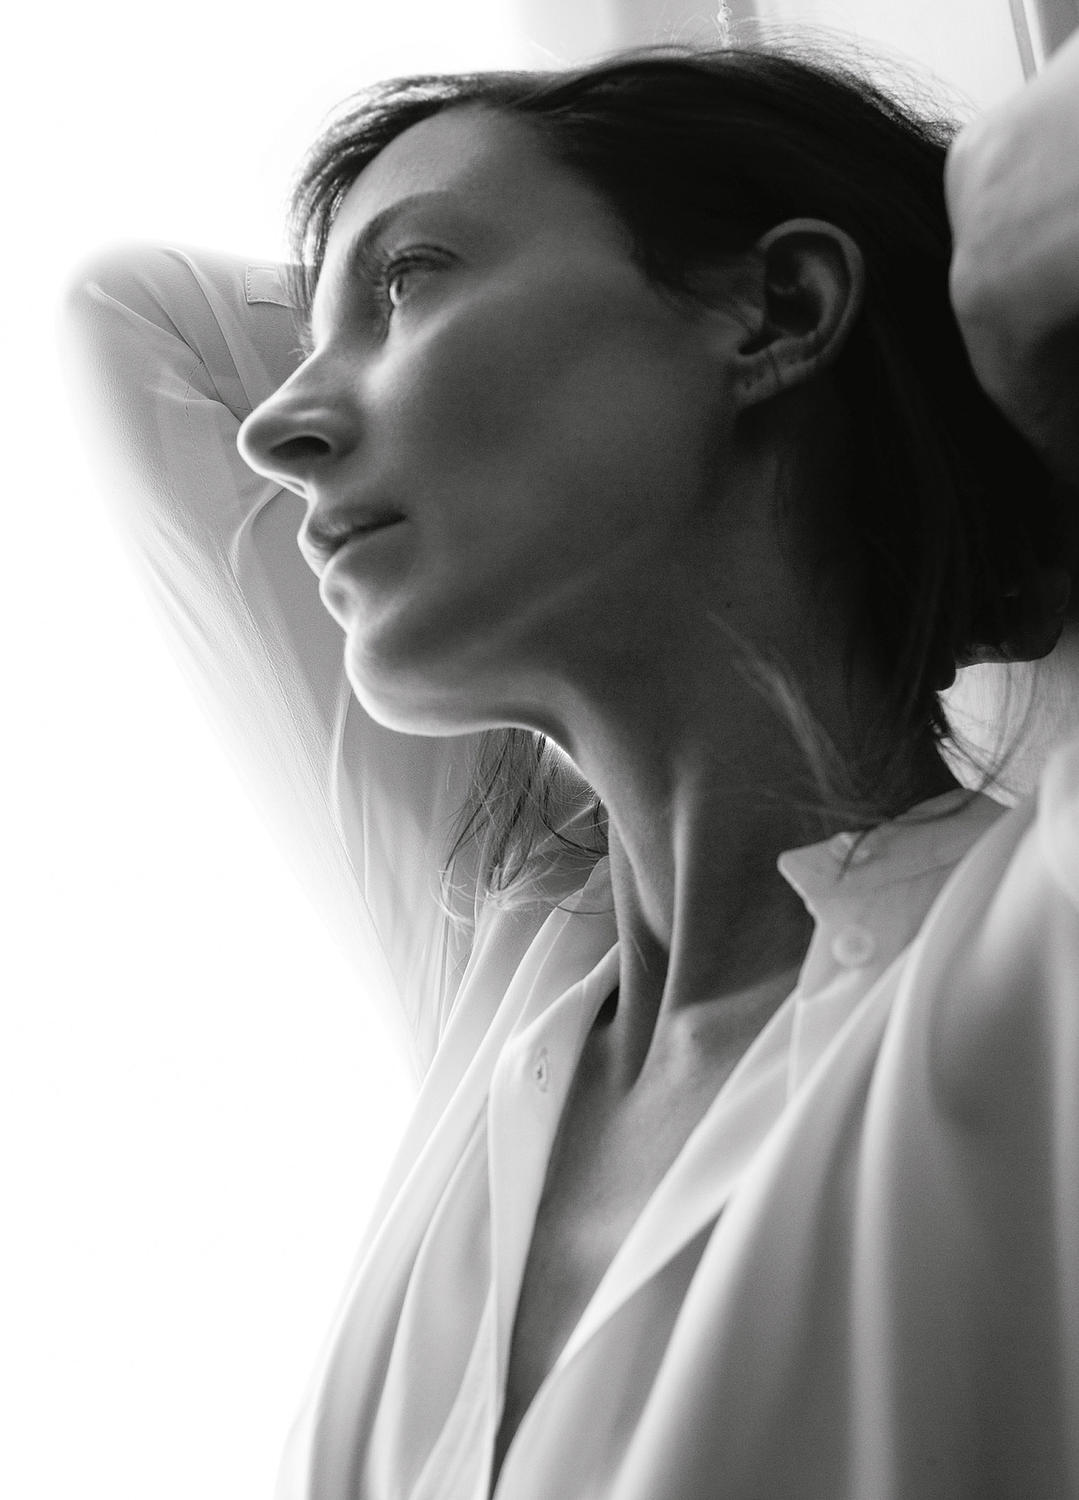 Phoebe Philo by David Sim for The Gentlewoman